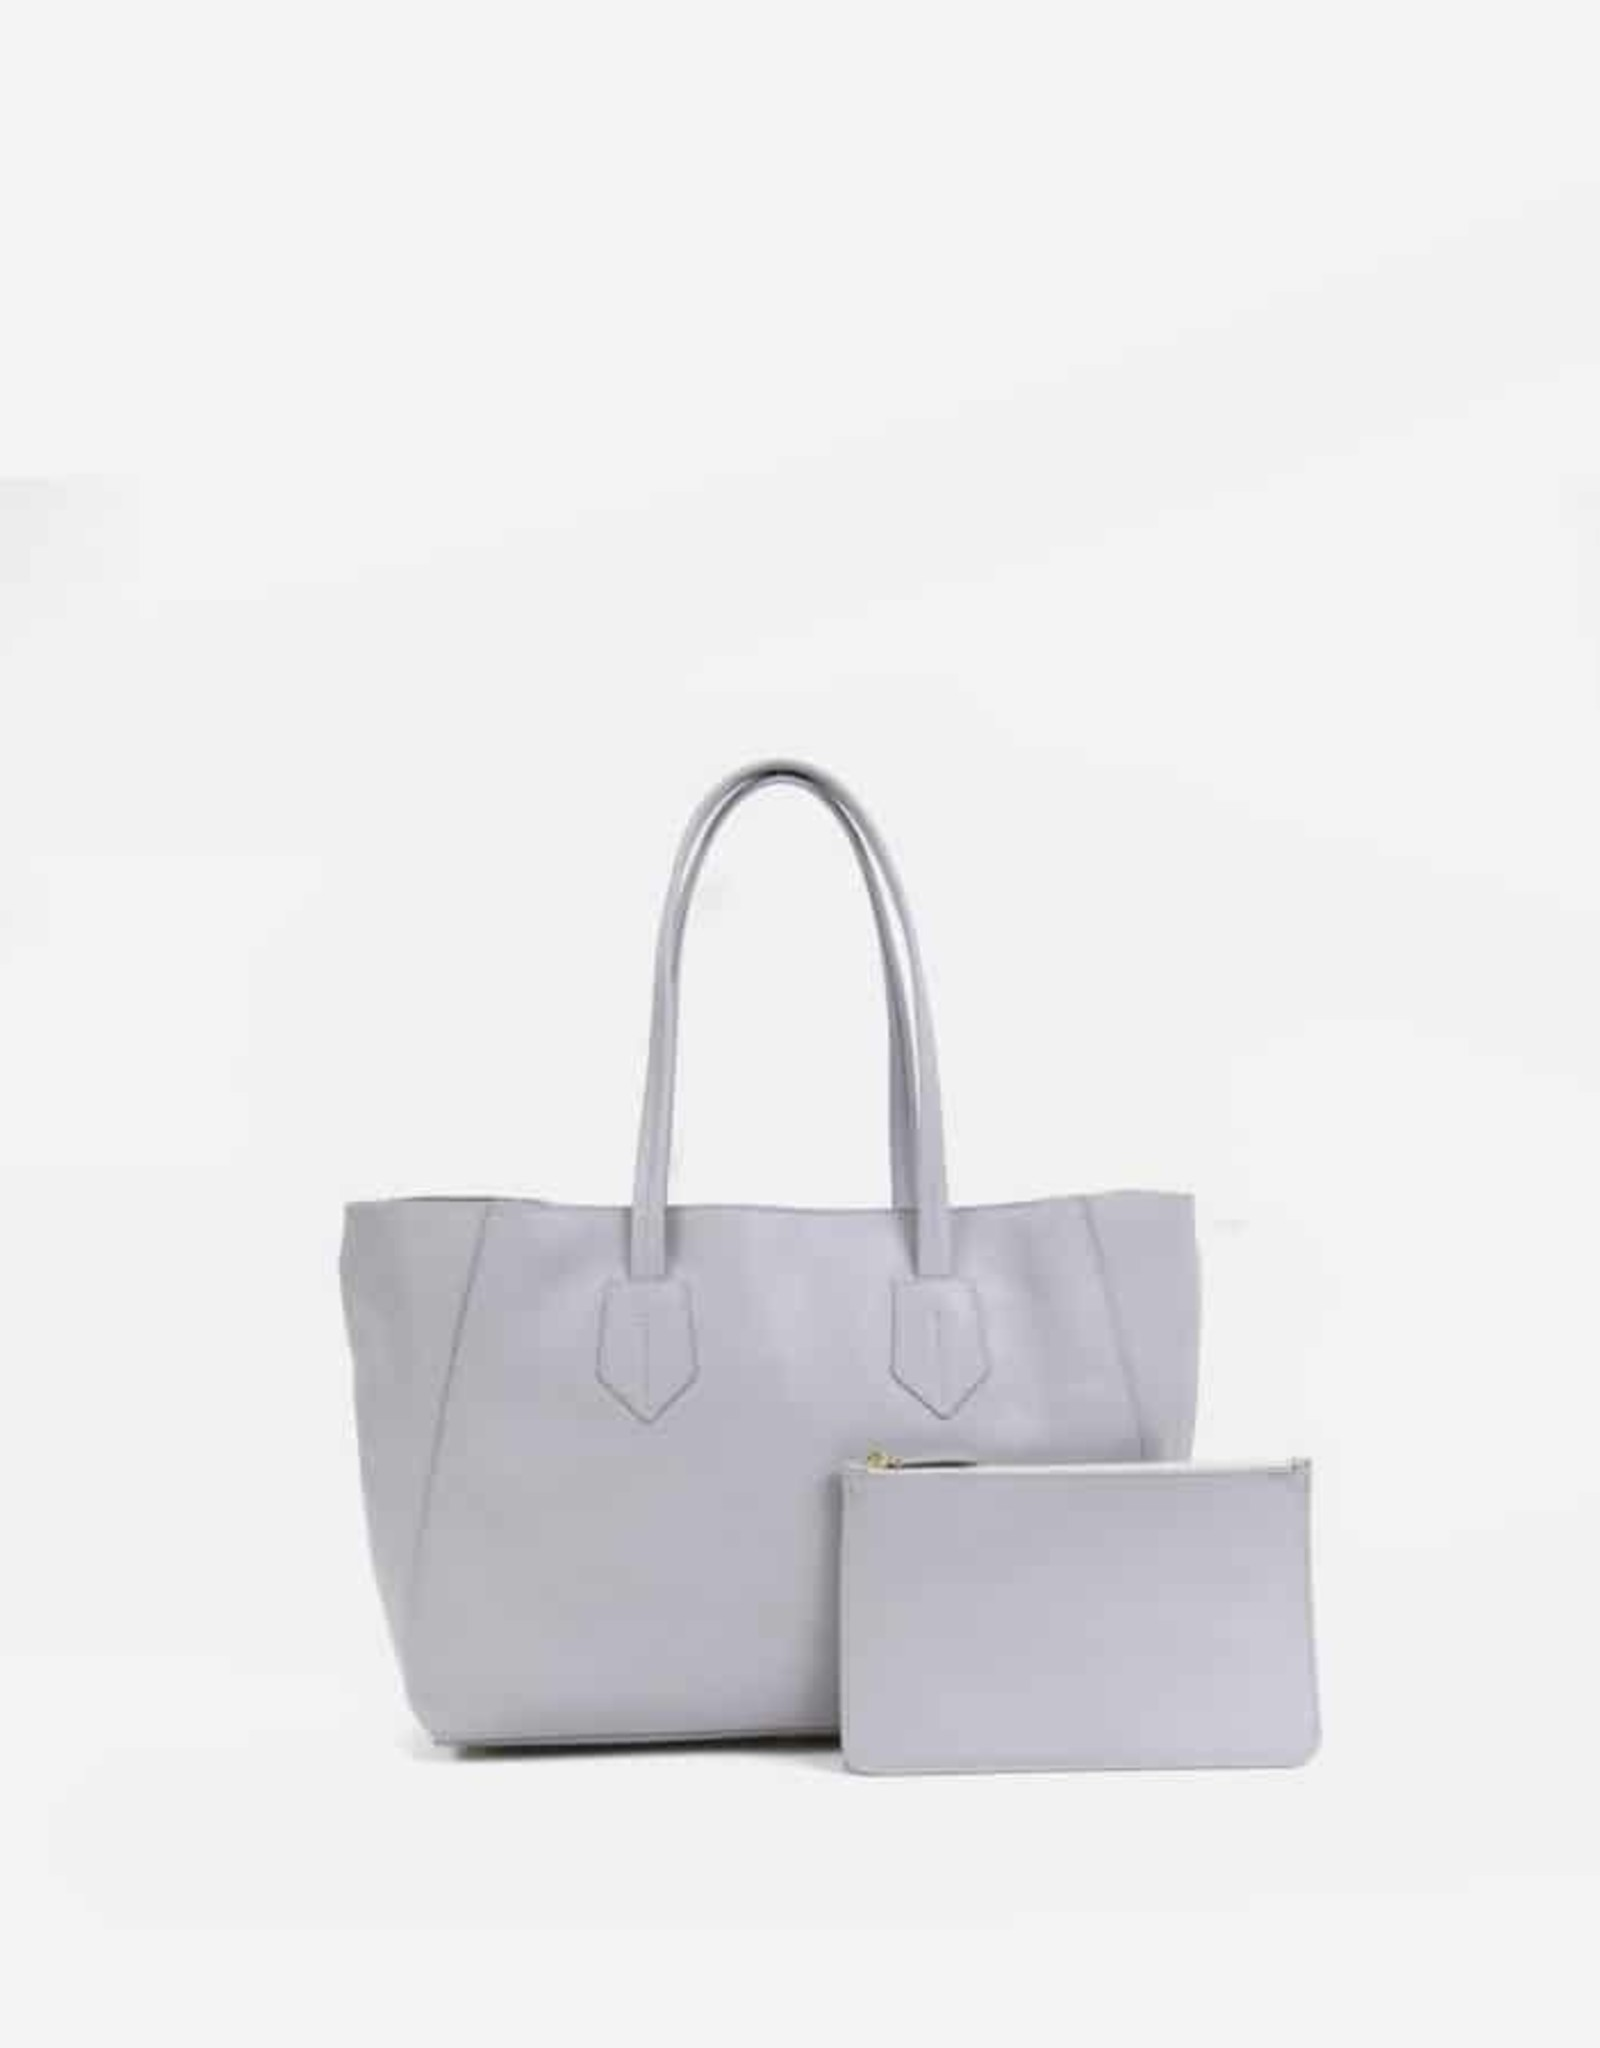 Gifts The Small Tote